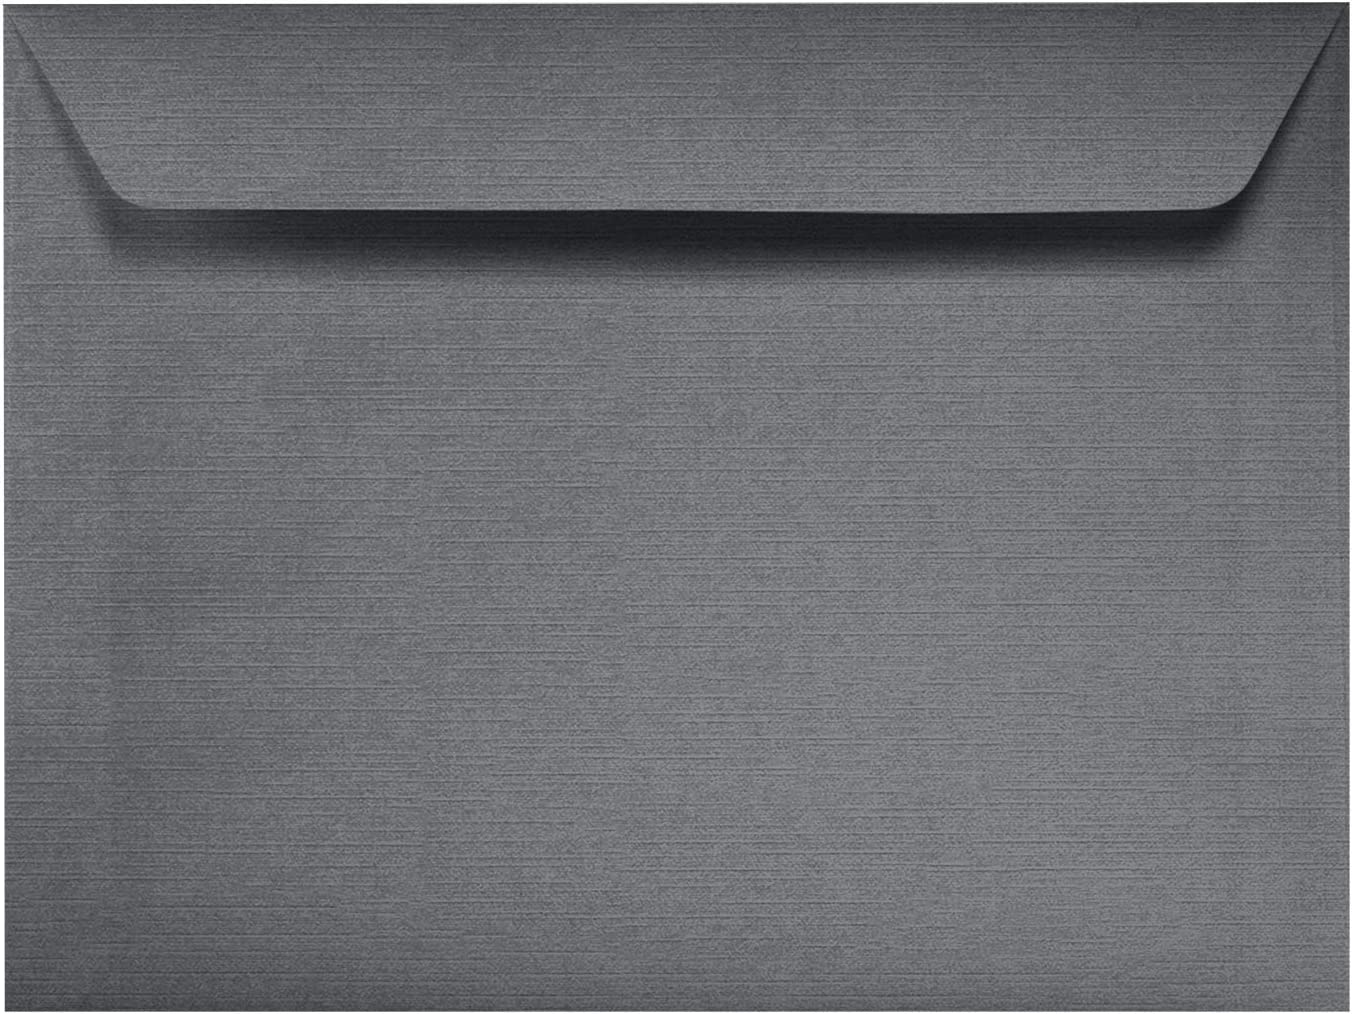 9 x Shipping included 12 Booklet Envelopes in Max 62% OFF 80 Sterling Maili for Gray lb. Linen